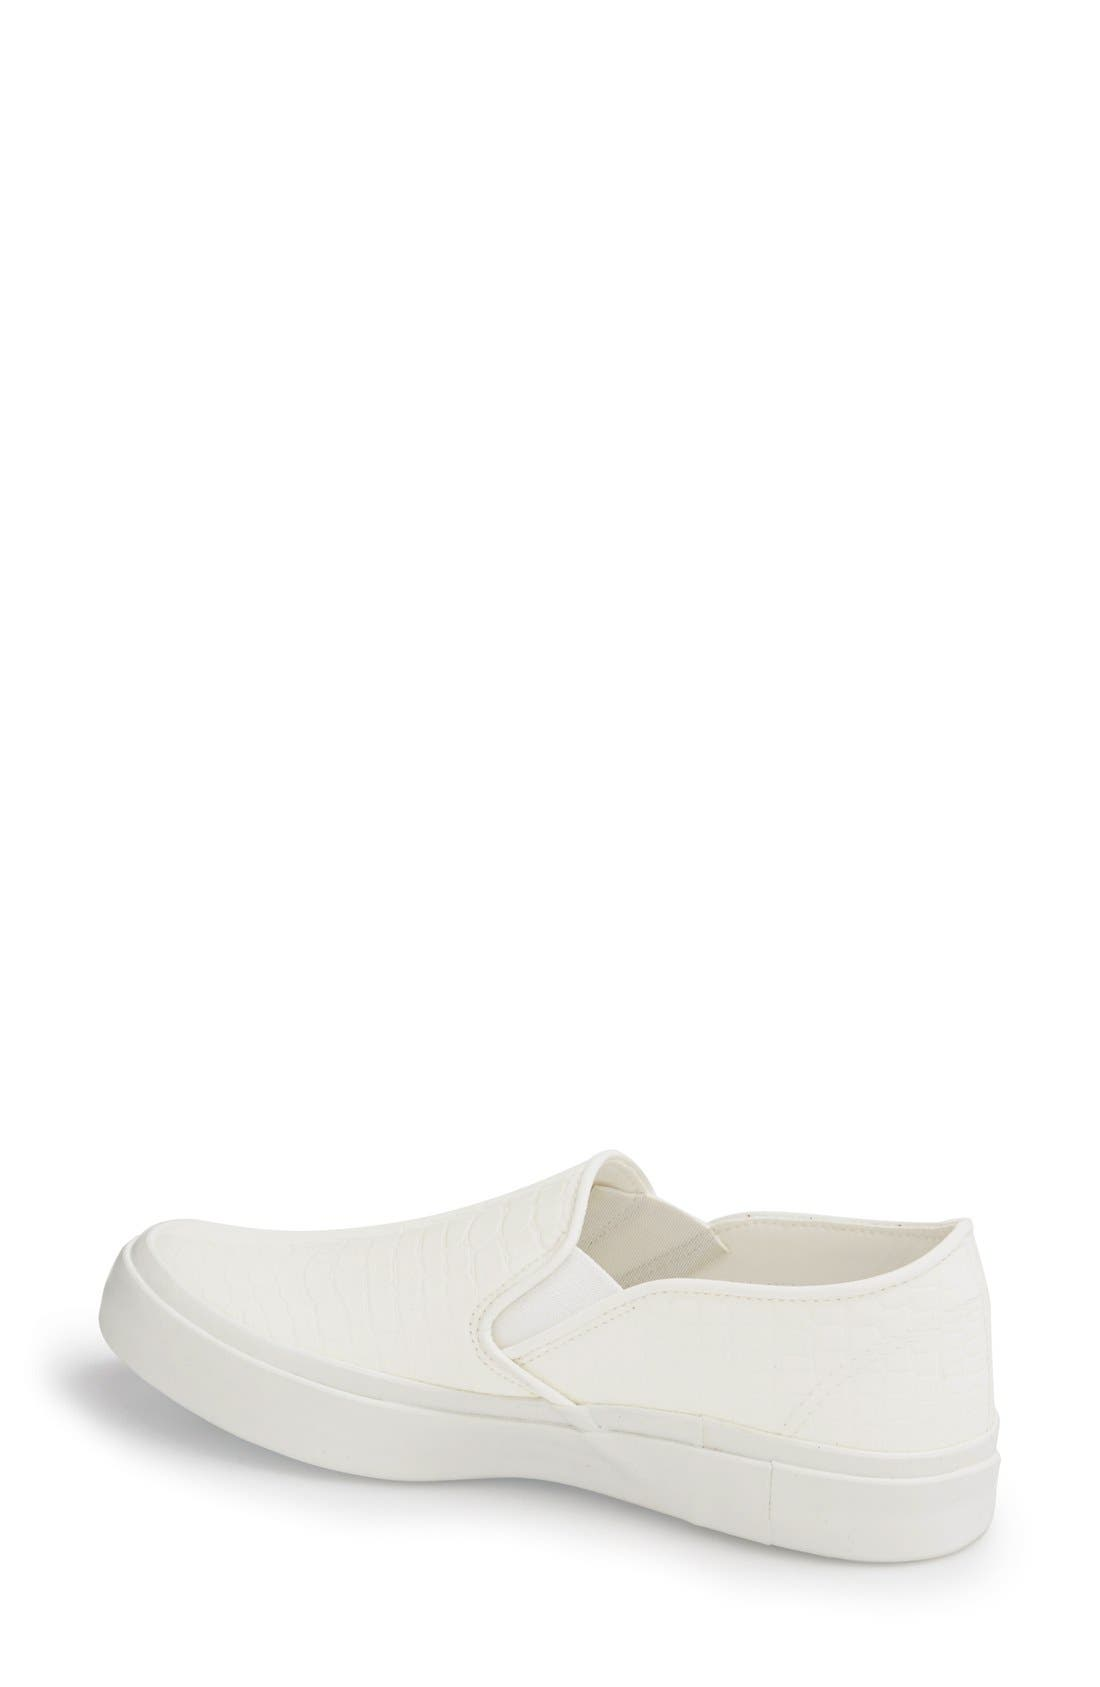 Slip-On Sneaker,                             Alternate thumbnail 2, color,                             White